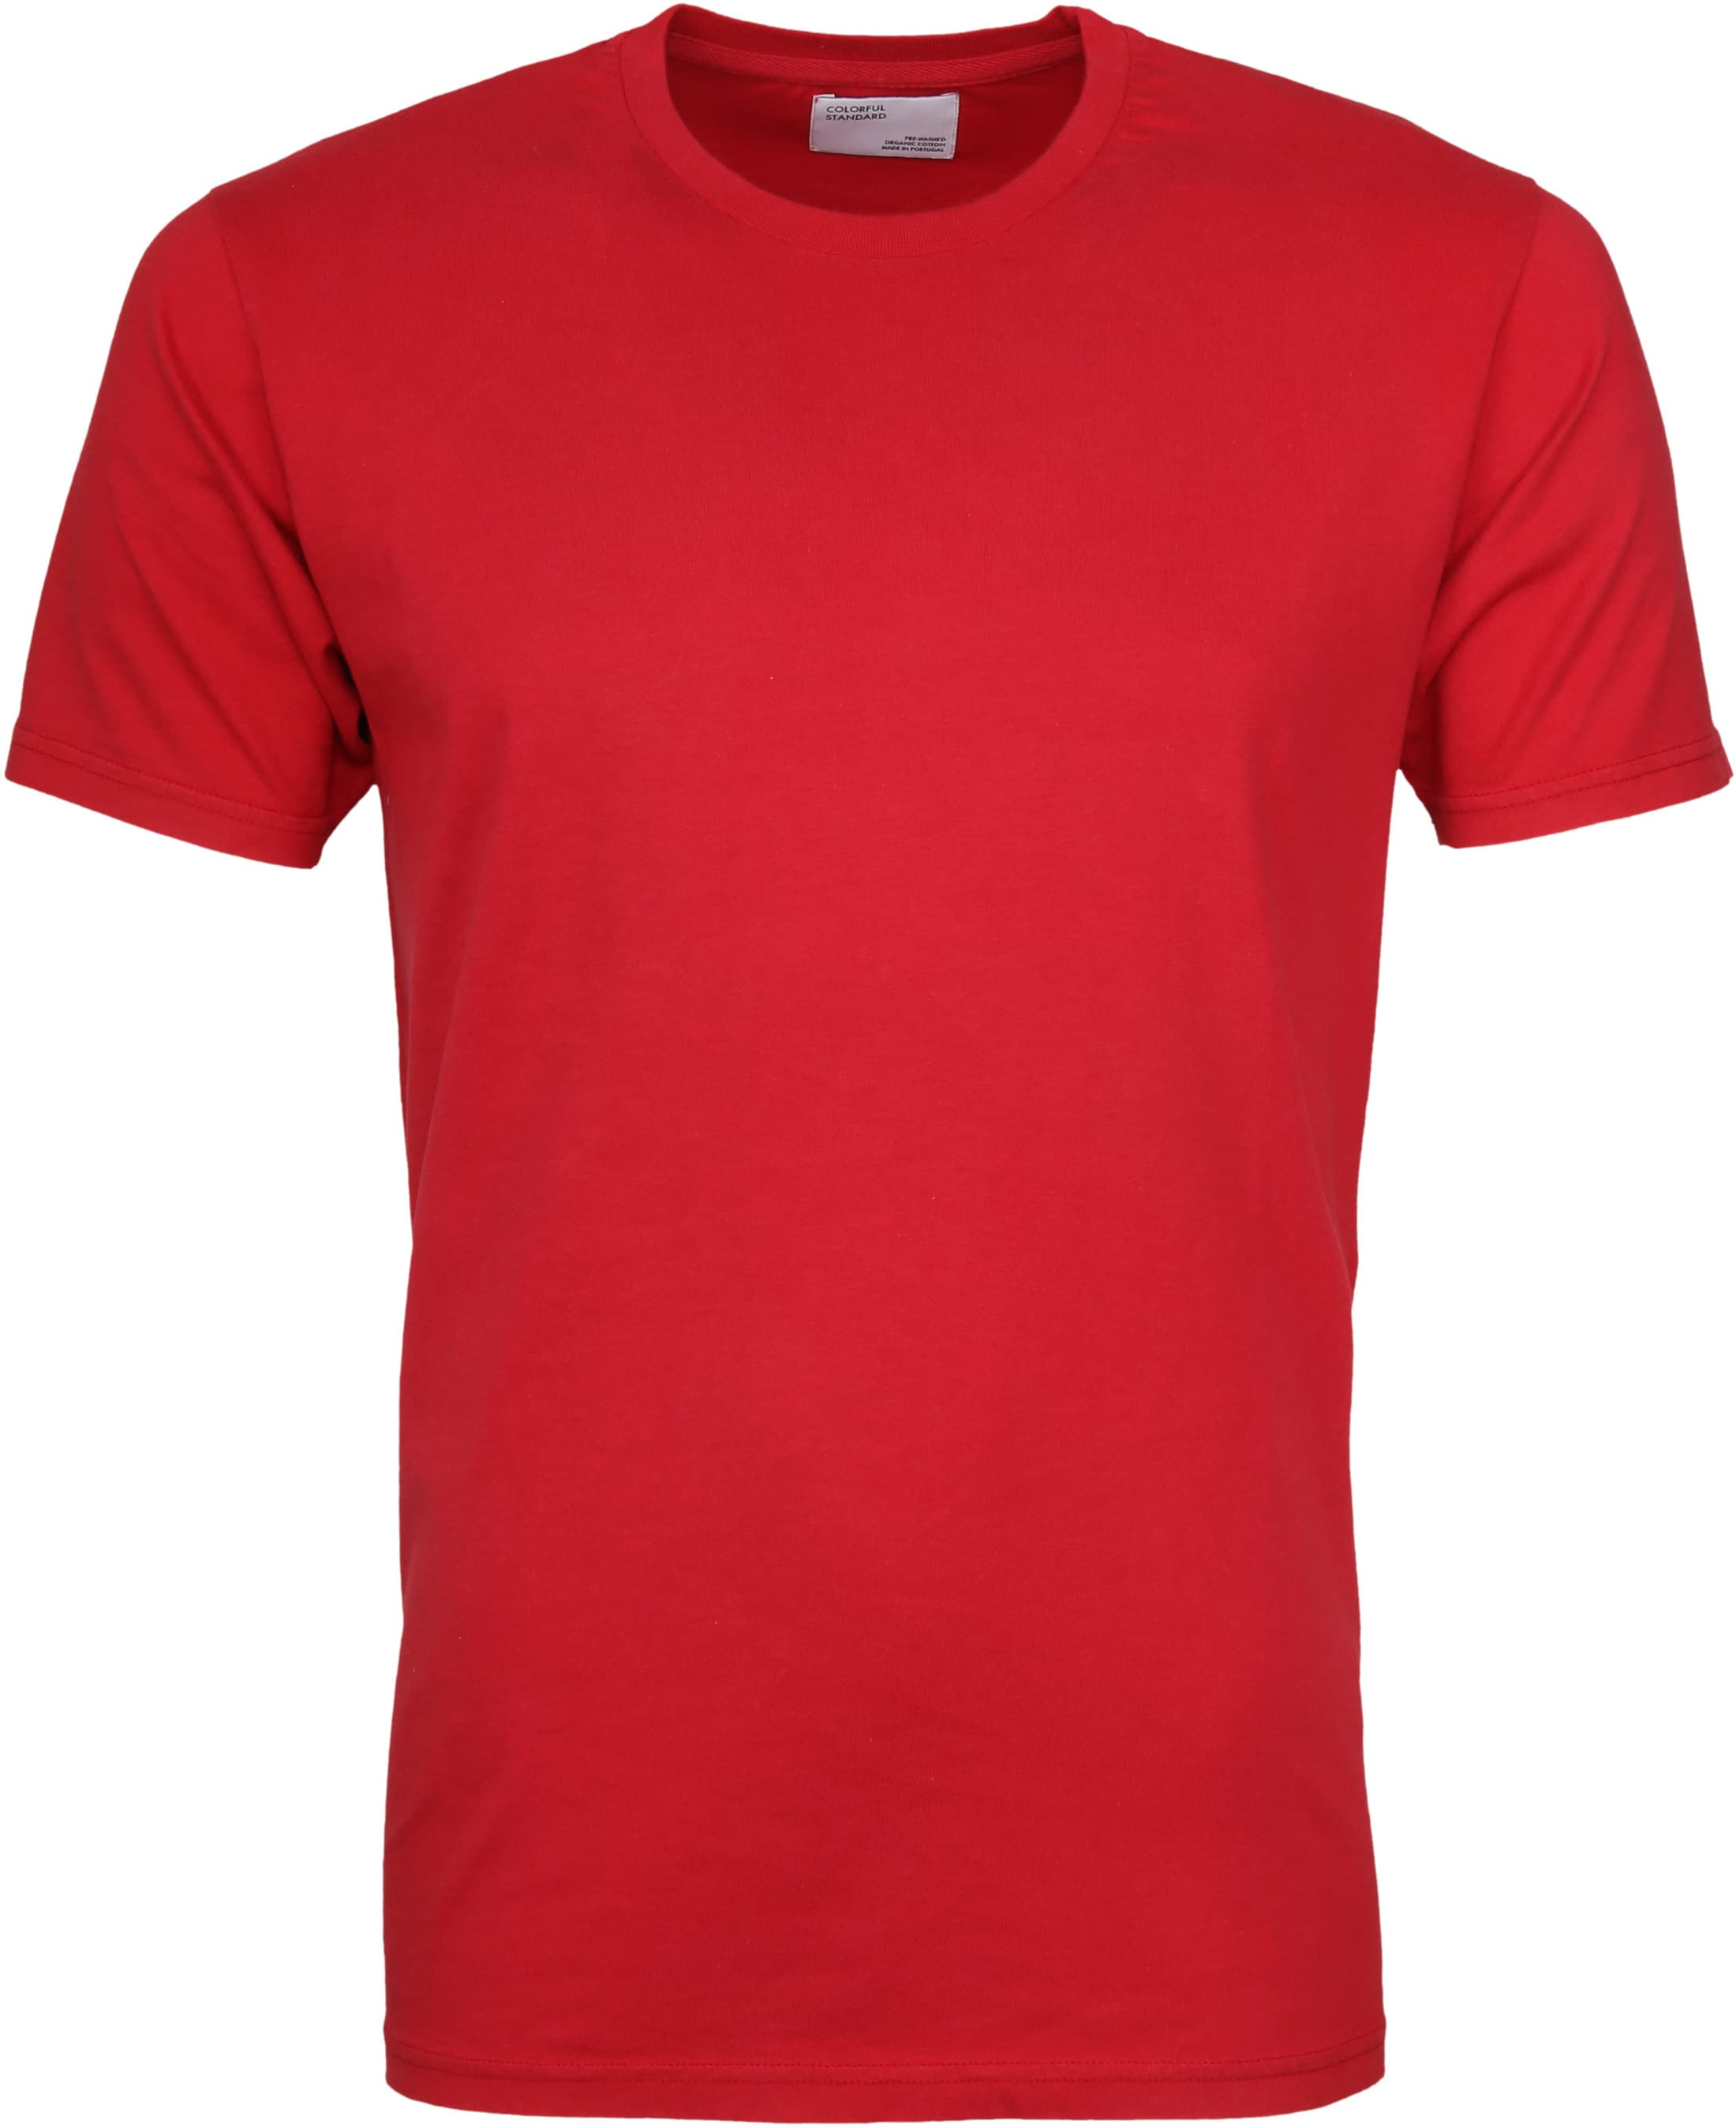 Colorful Standard T-shirt Scarlet Red foto 0